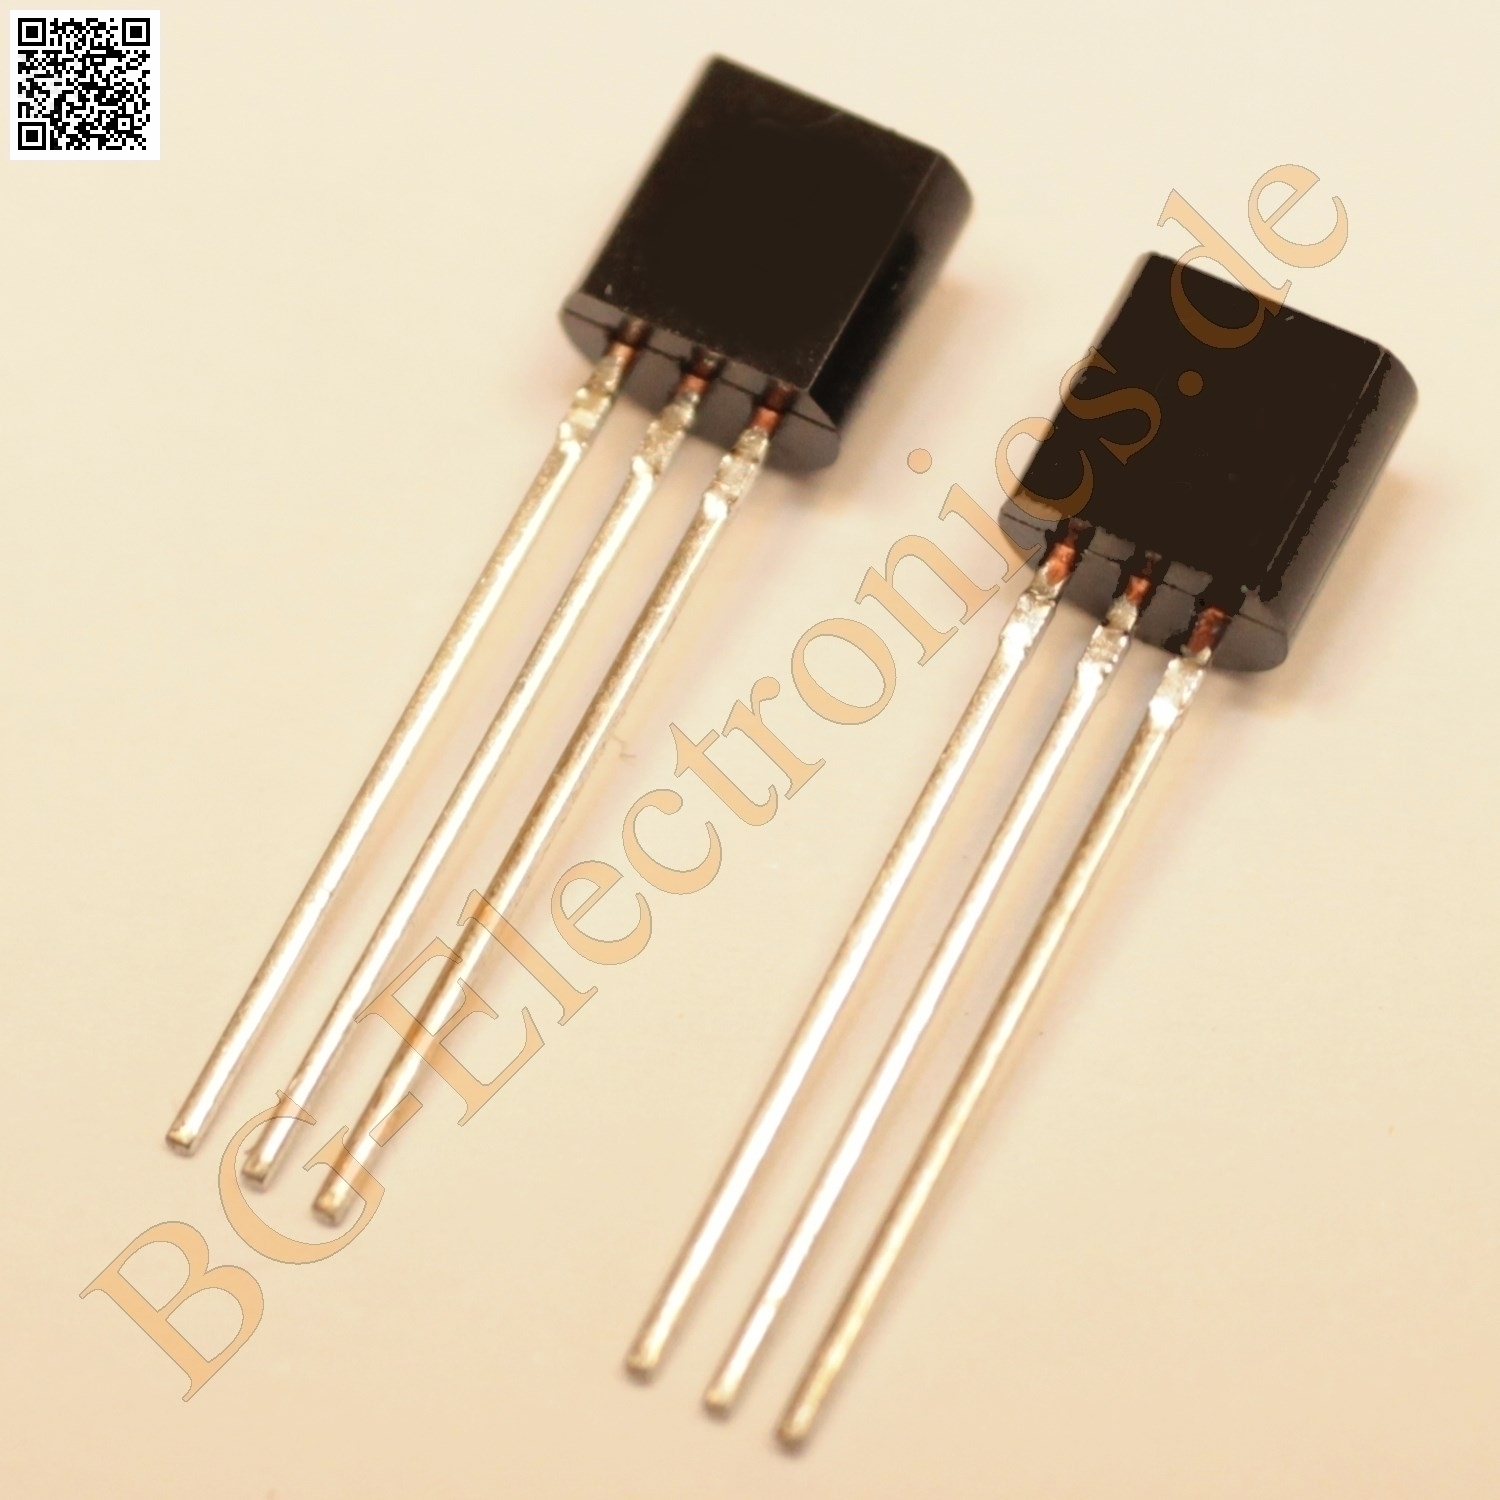 5-x-BT169B-Silicon-Controlled-Rectifier-Philips-TO-92-5pcs